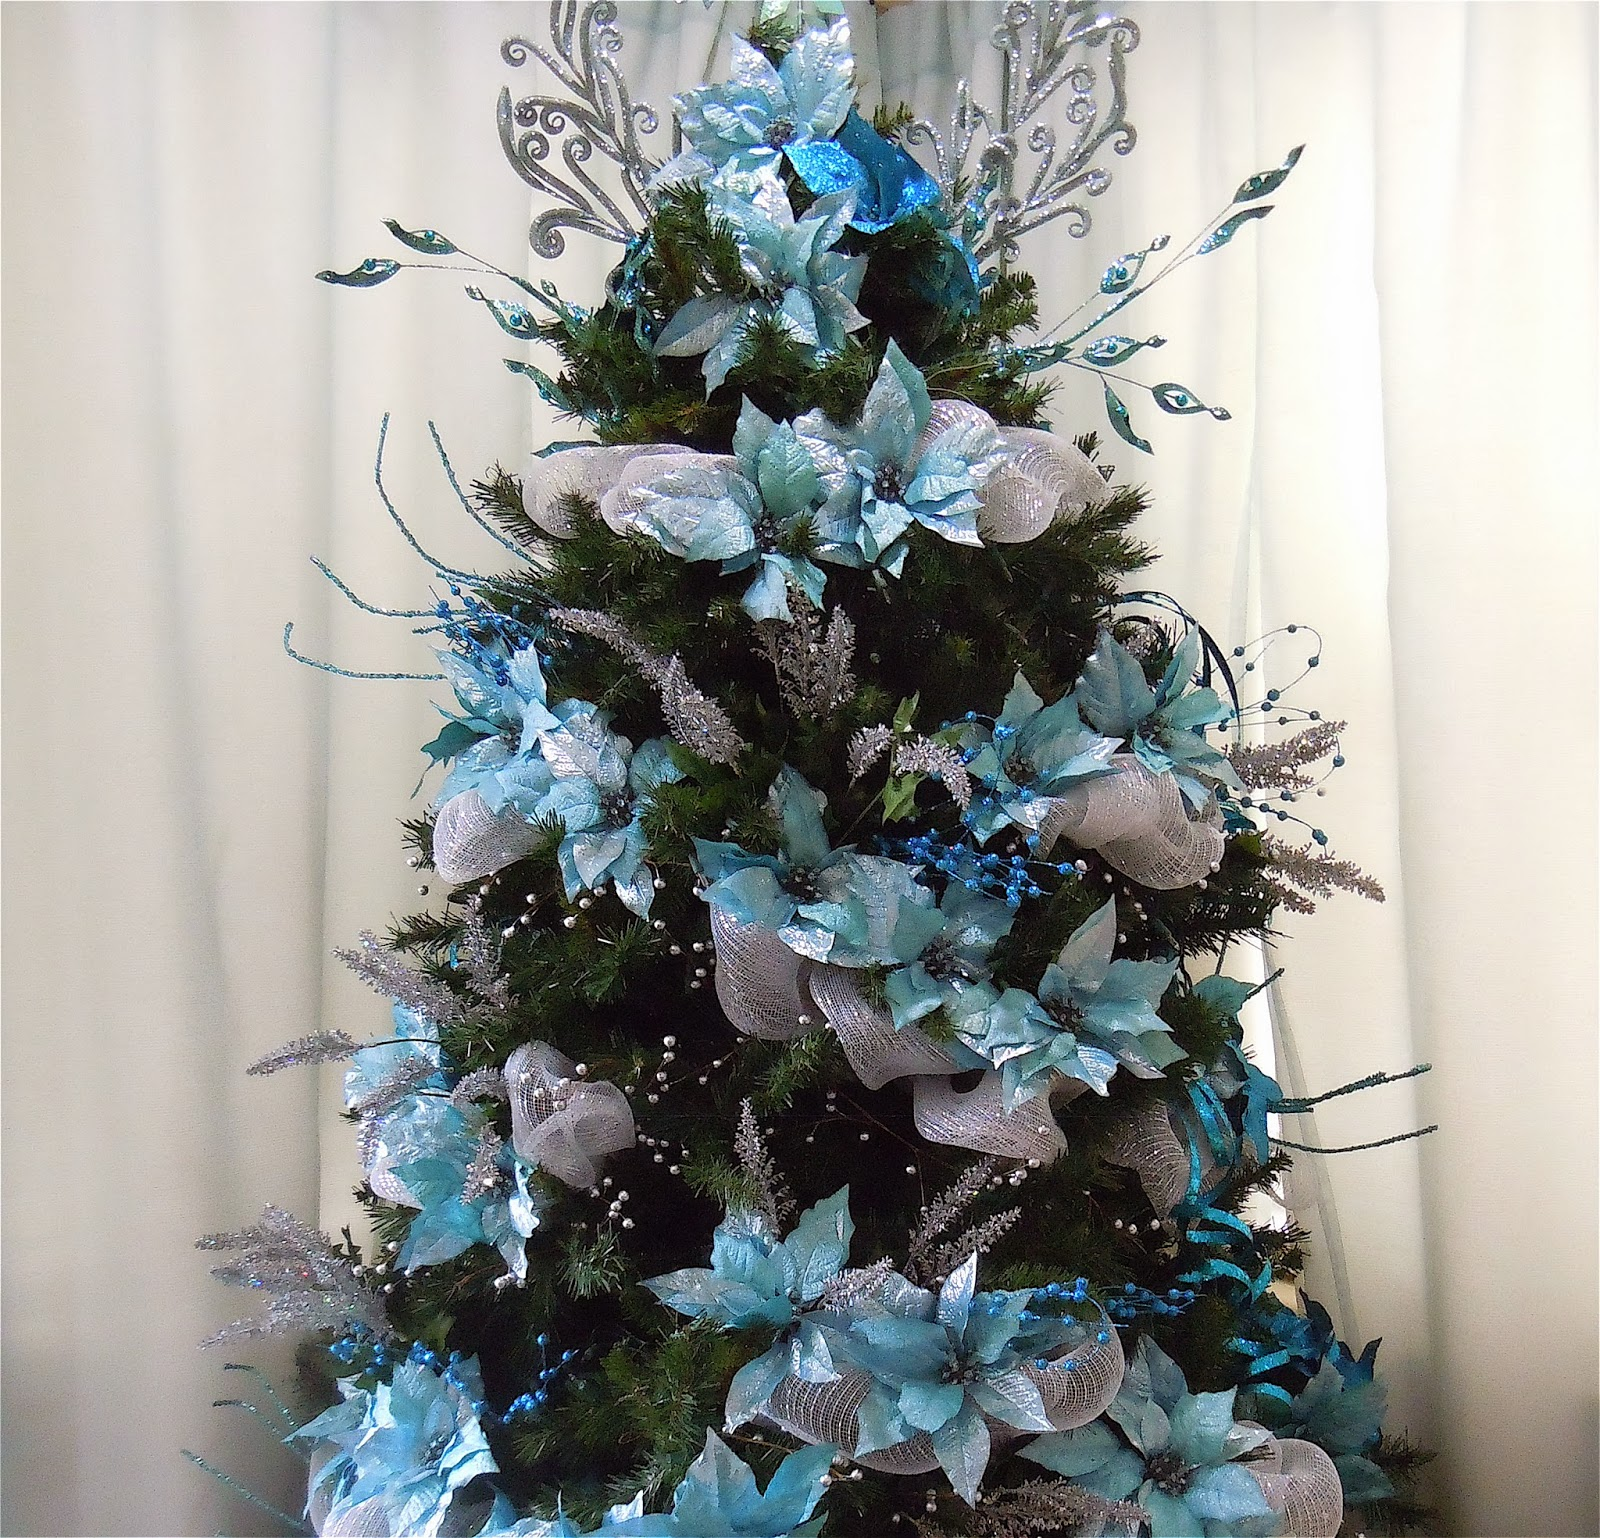 Christmas tree decorations purple and silver - Christmas Tree Decorations Blue And Silver Gisvk7ei Dscn2156x